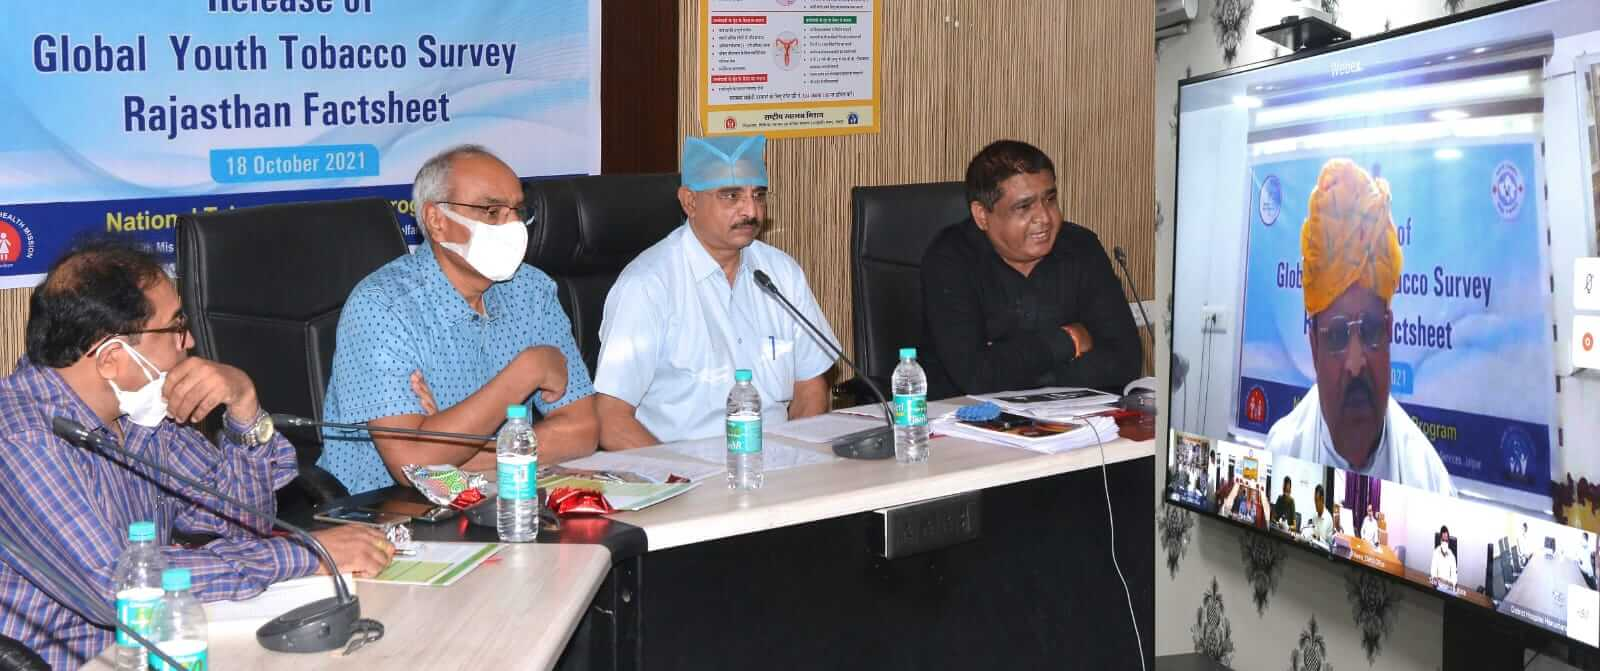 The percentage of tobacco consumption in the age group of 13 to 15 in Rajasthan is 4.1 percent